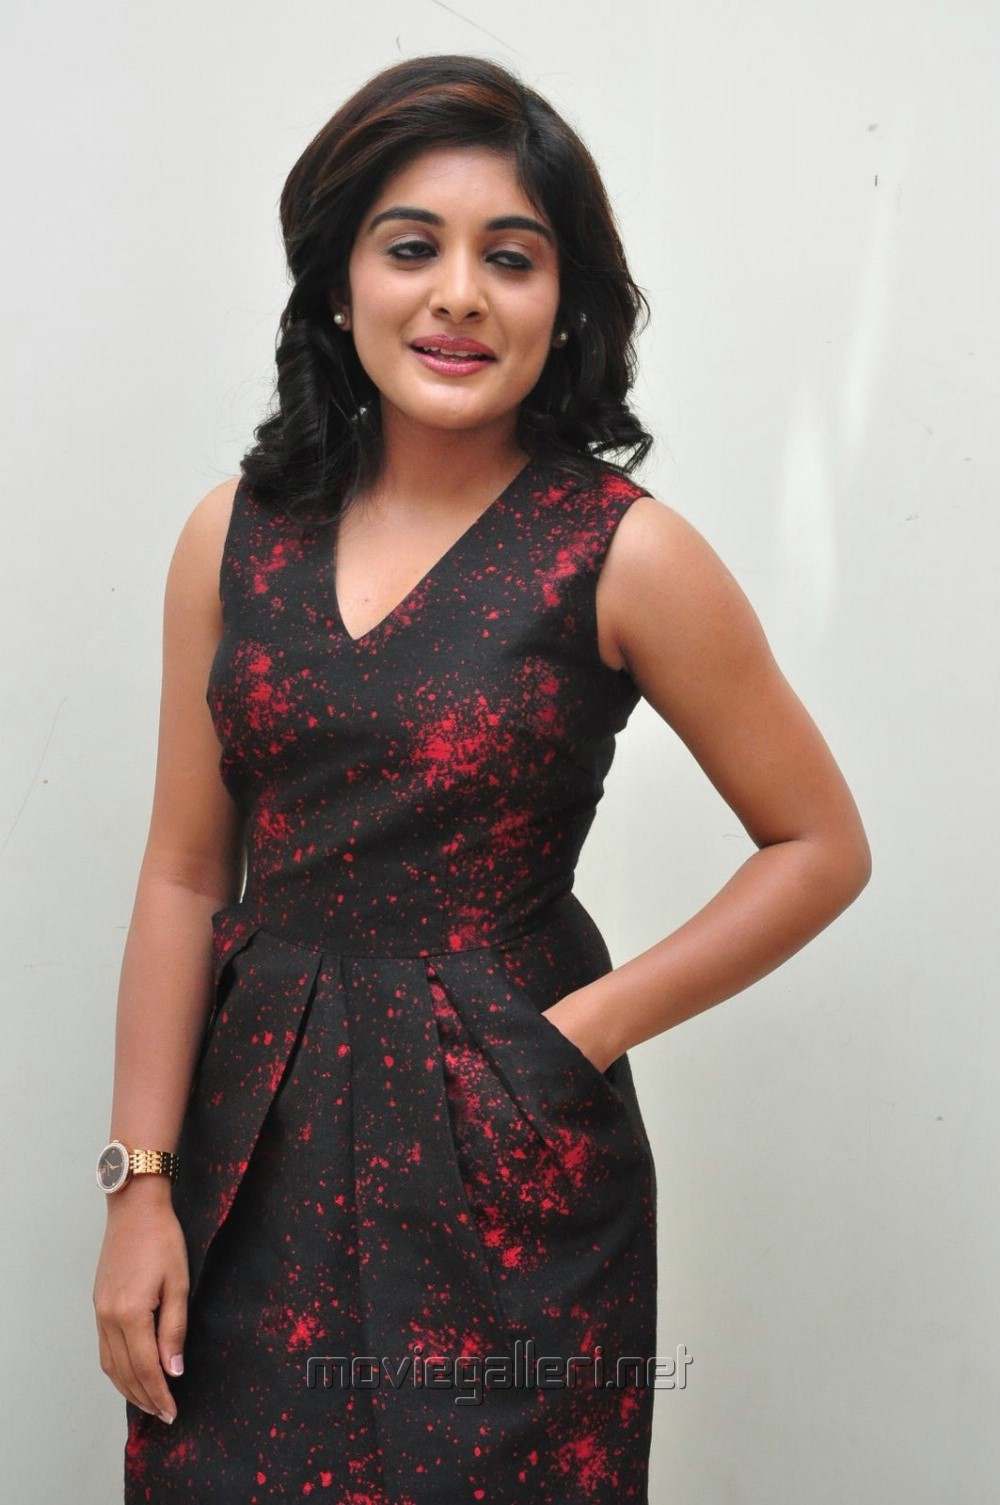 Actress Niveda Thomas in Red Dress Stills